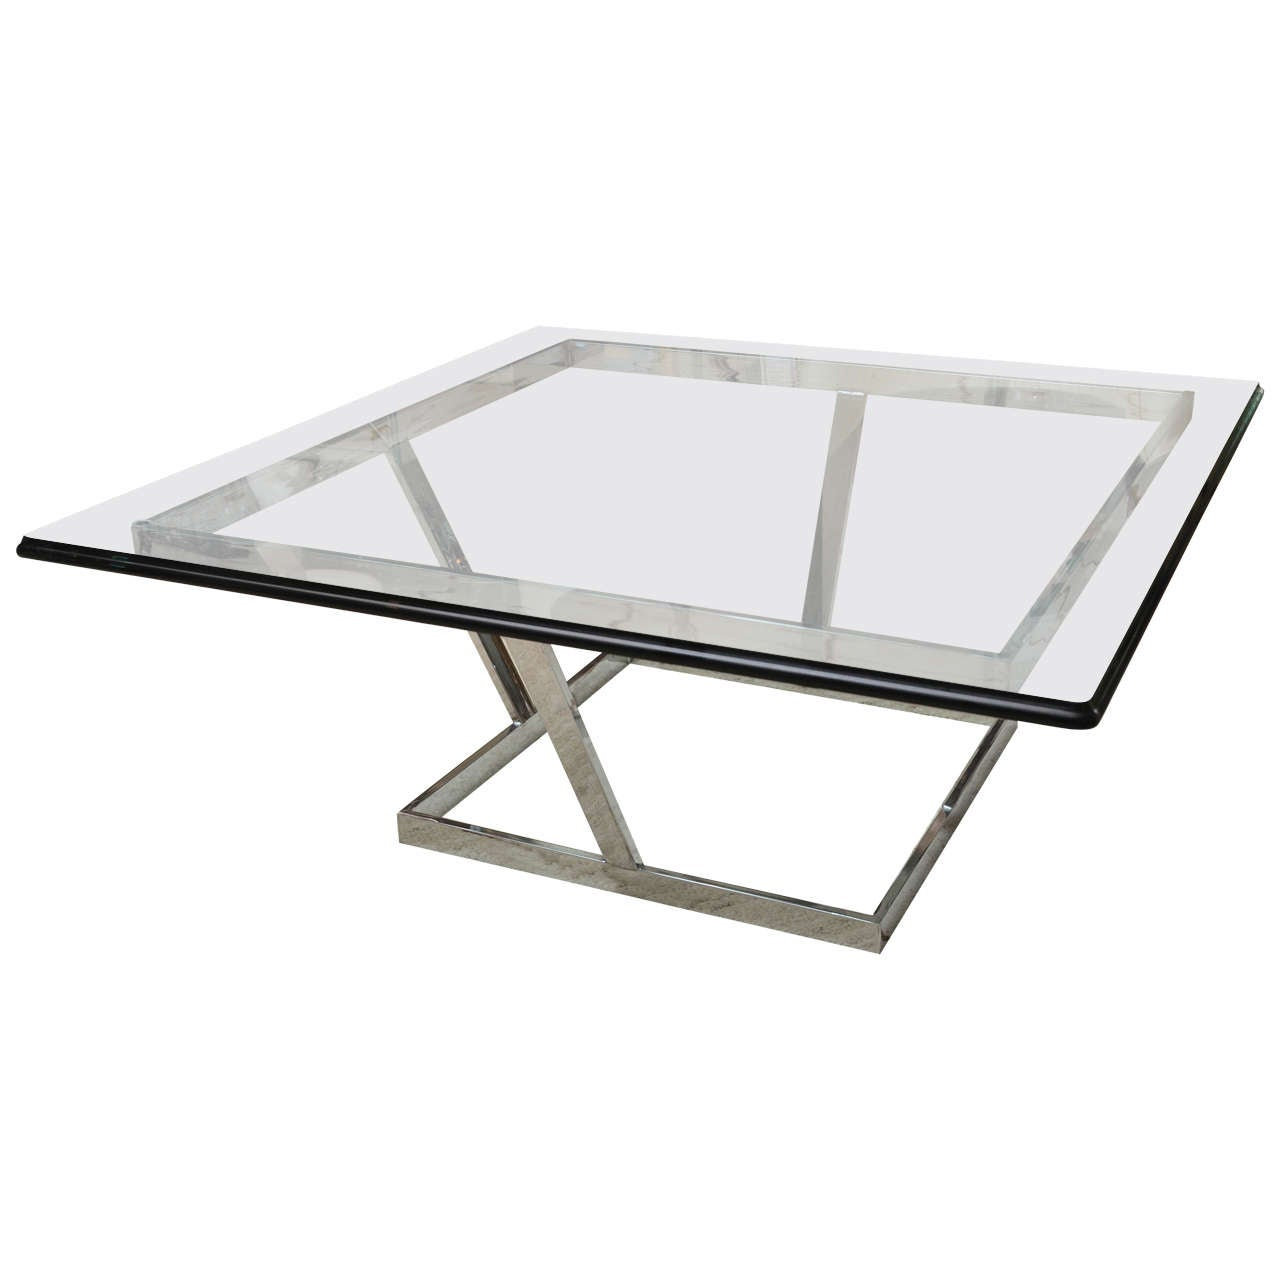 Vintage Square Glass And Chrome Cocktail Table By Karl Springer At 1stdibs